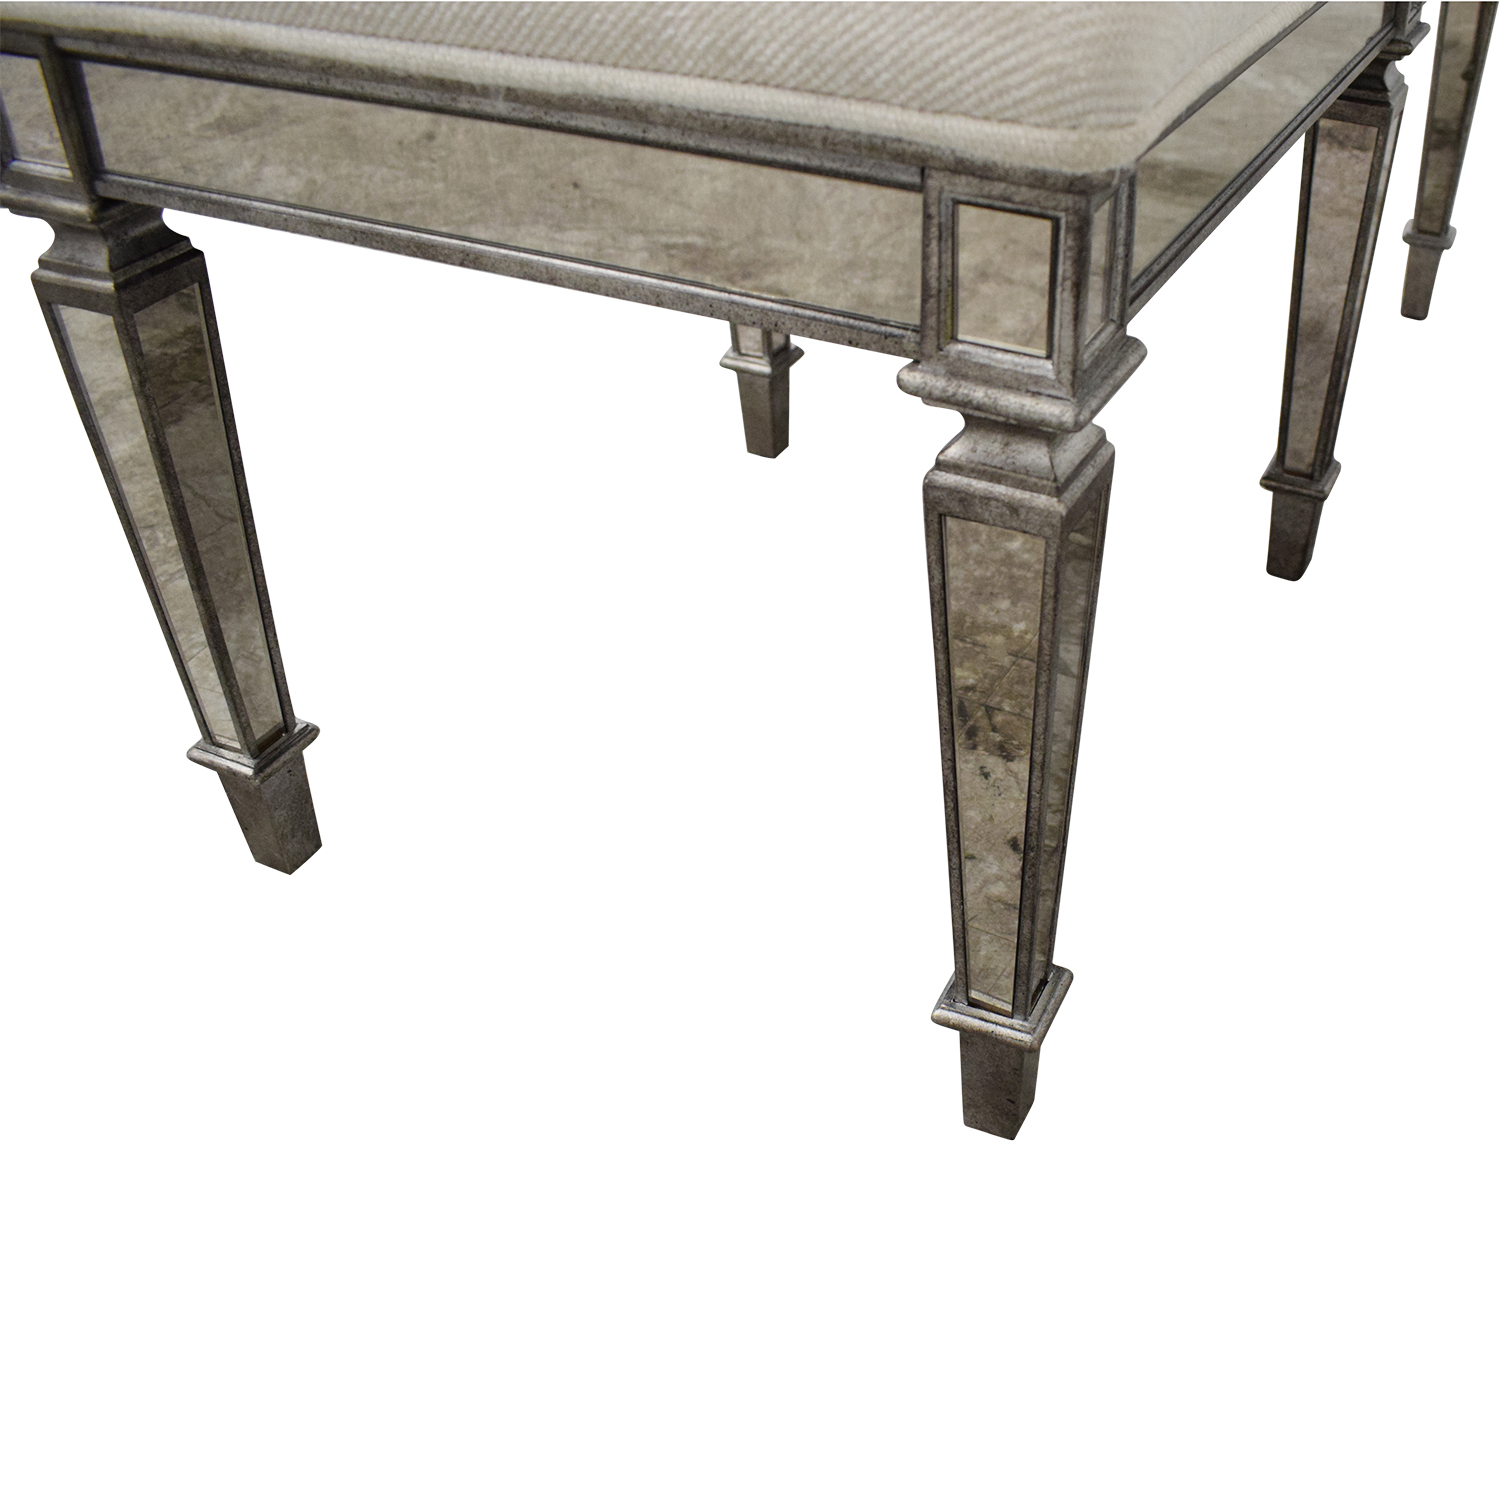 Horchow Horchow Denison Mirrored Bench second hand